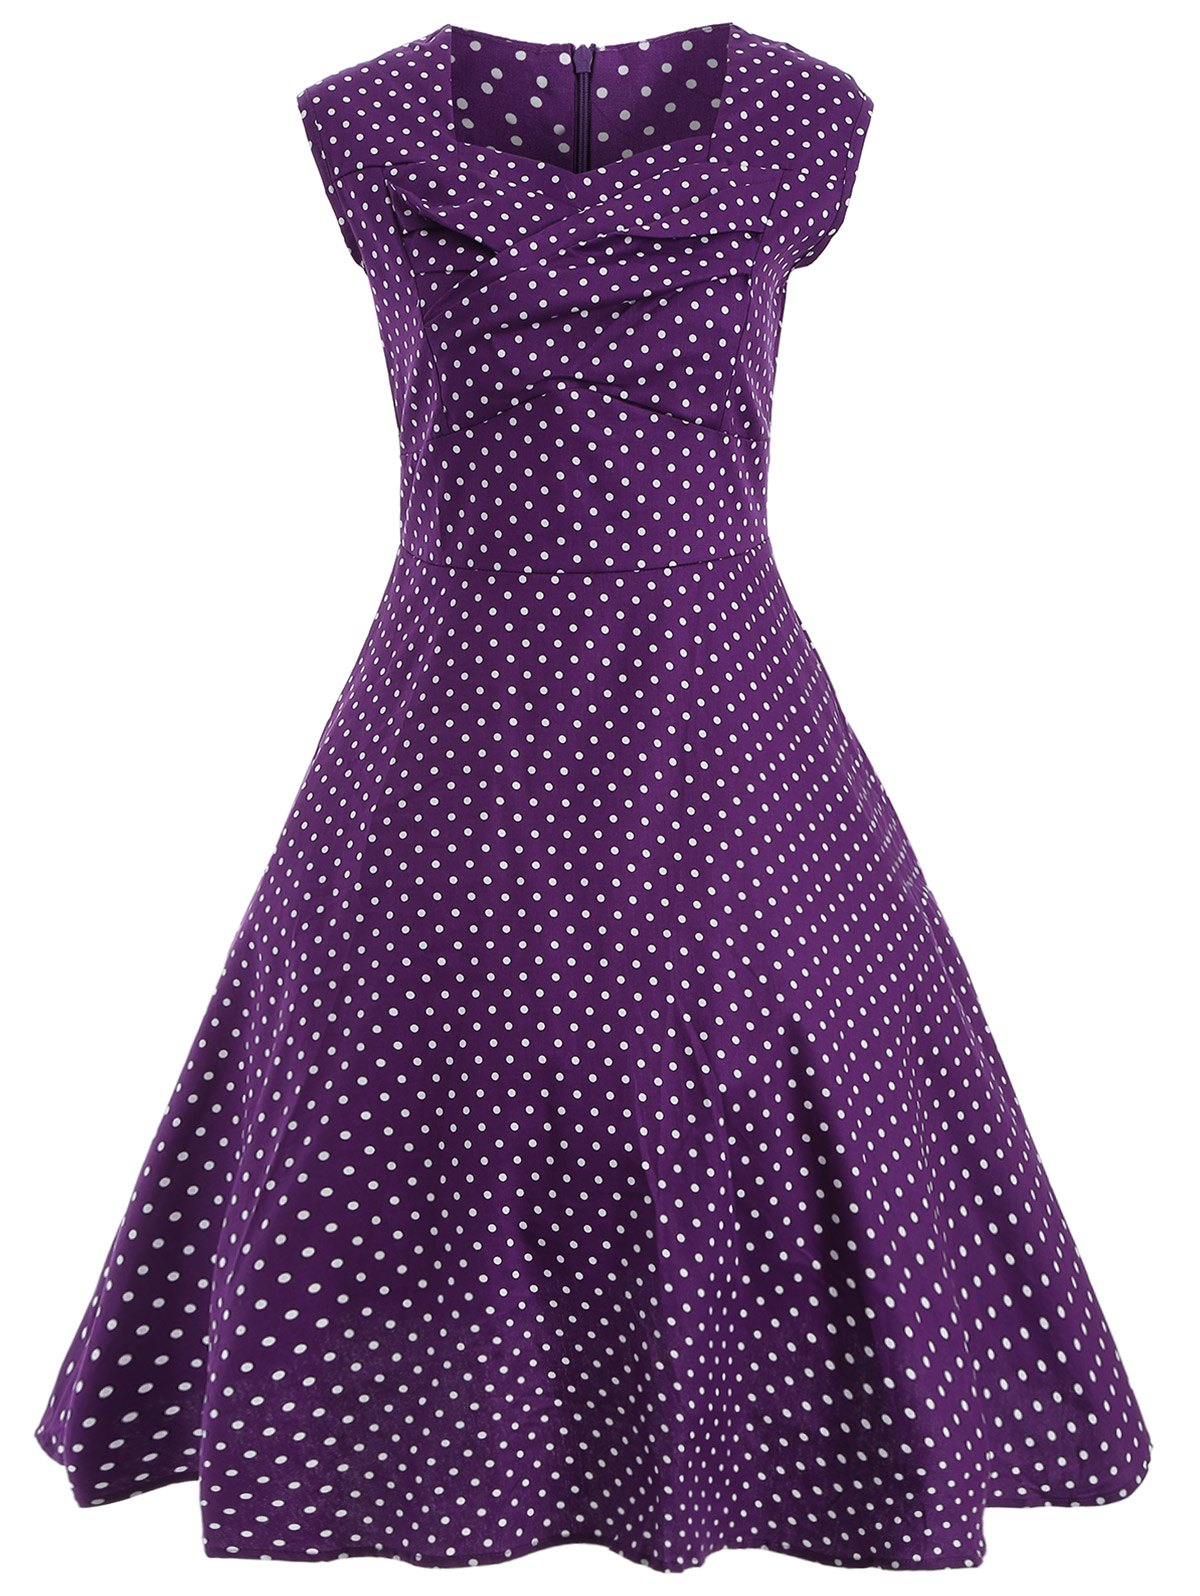 Audrey Hepburn Style Tiny Polka Dot Pattern Skater Dress - PURPLE 2XL